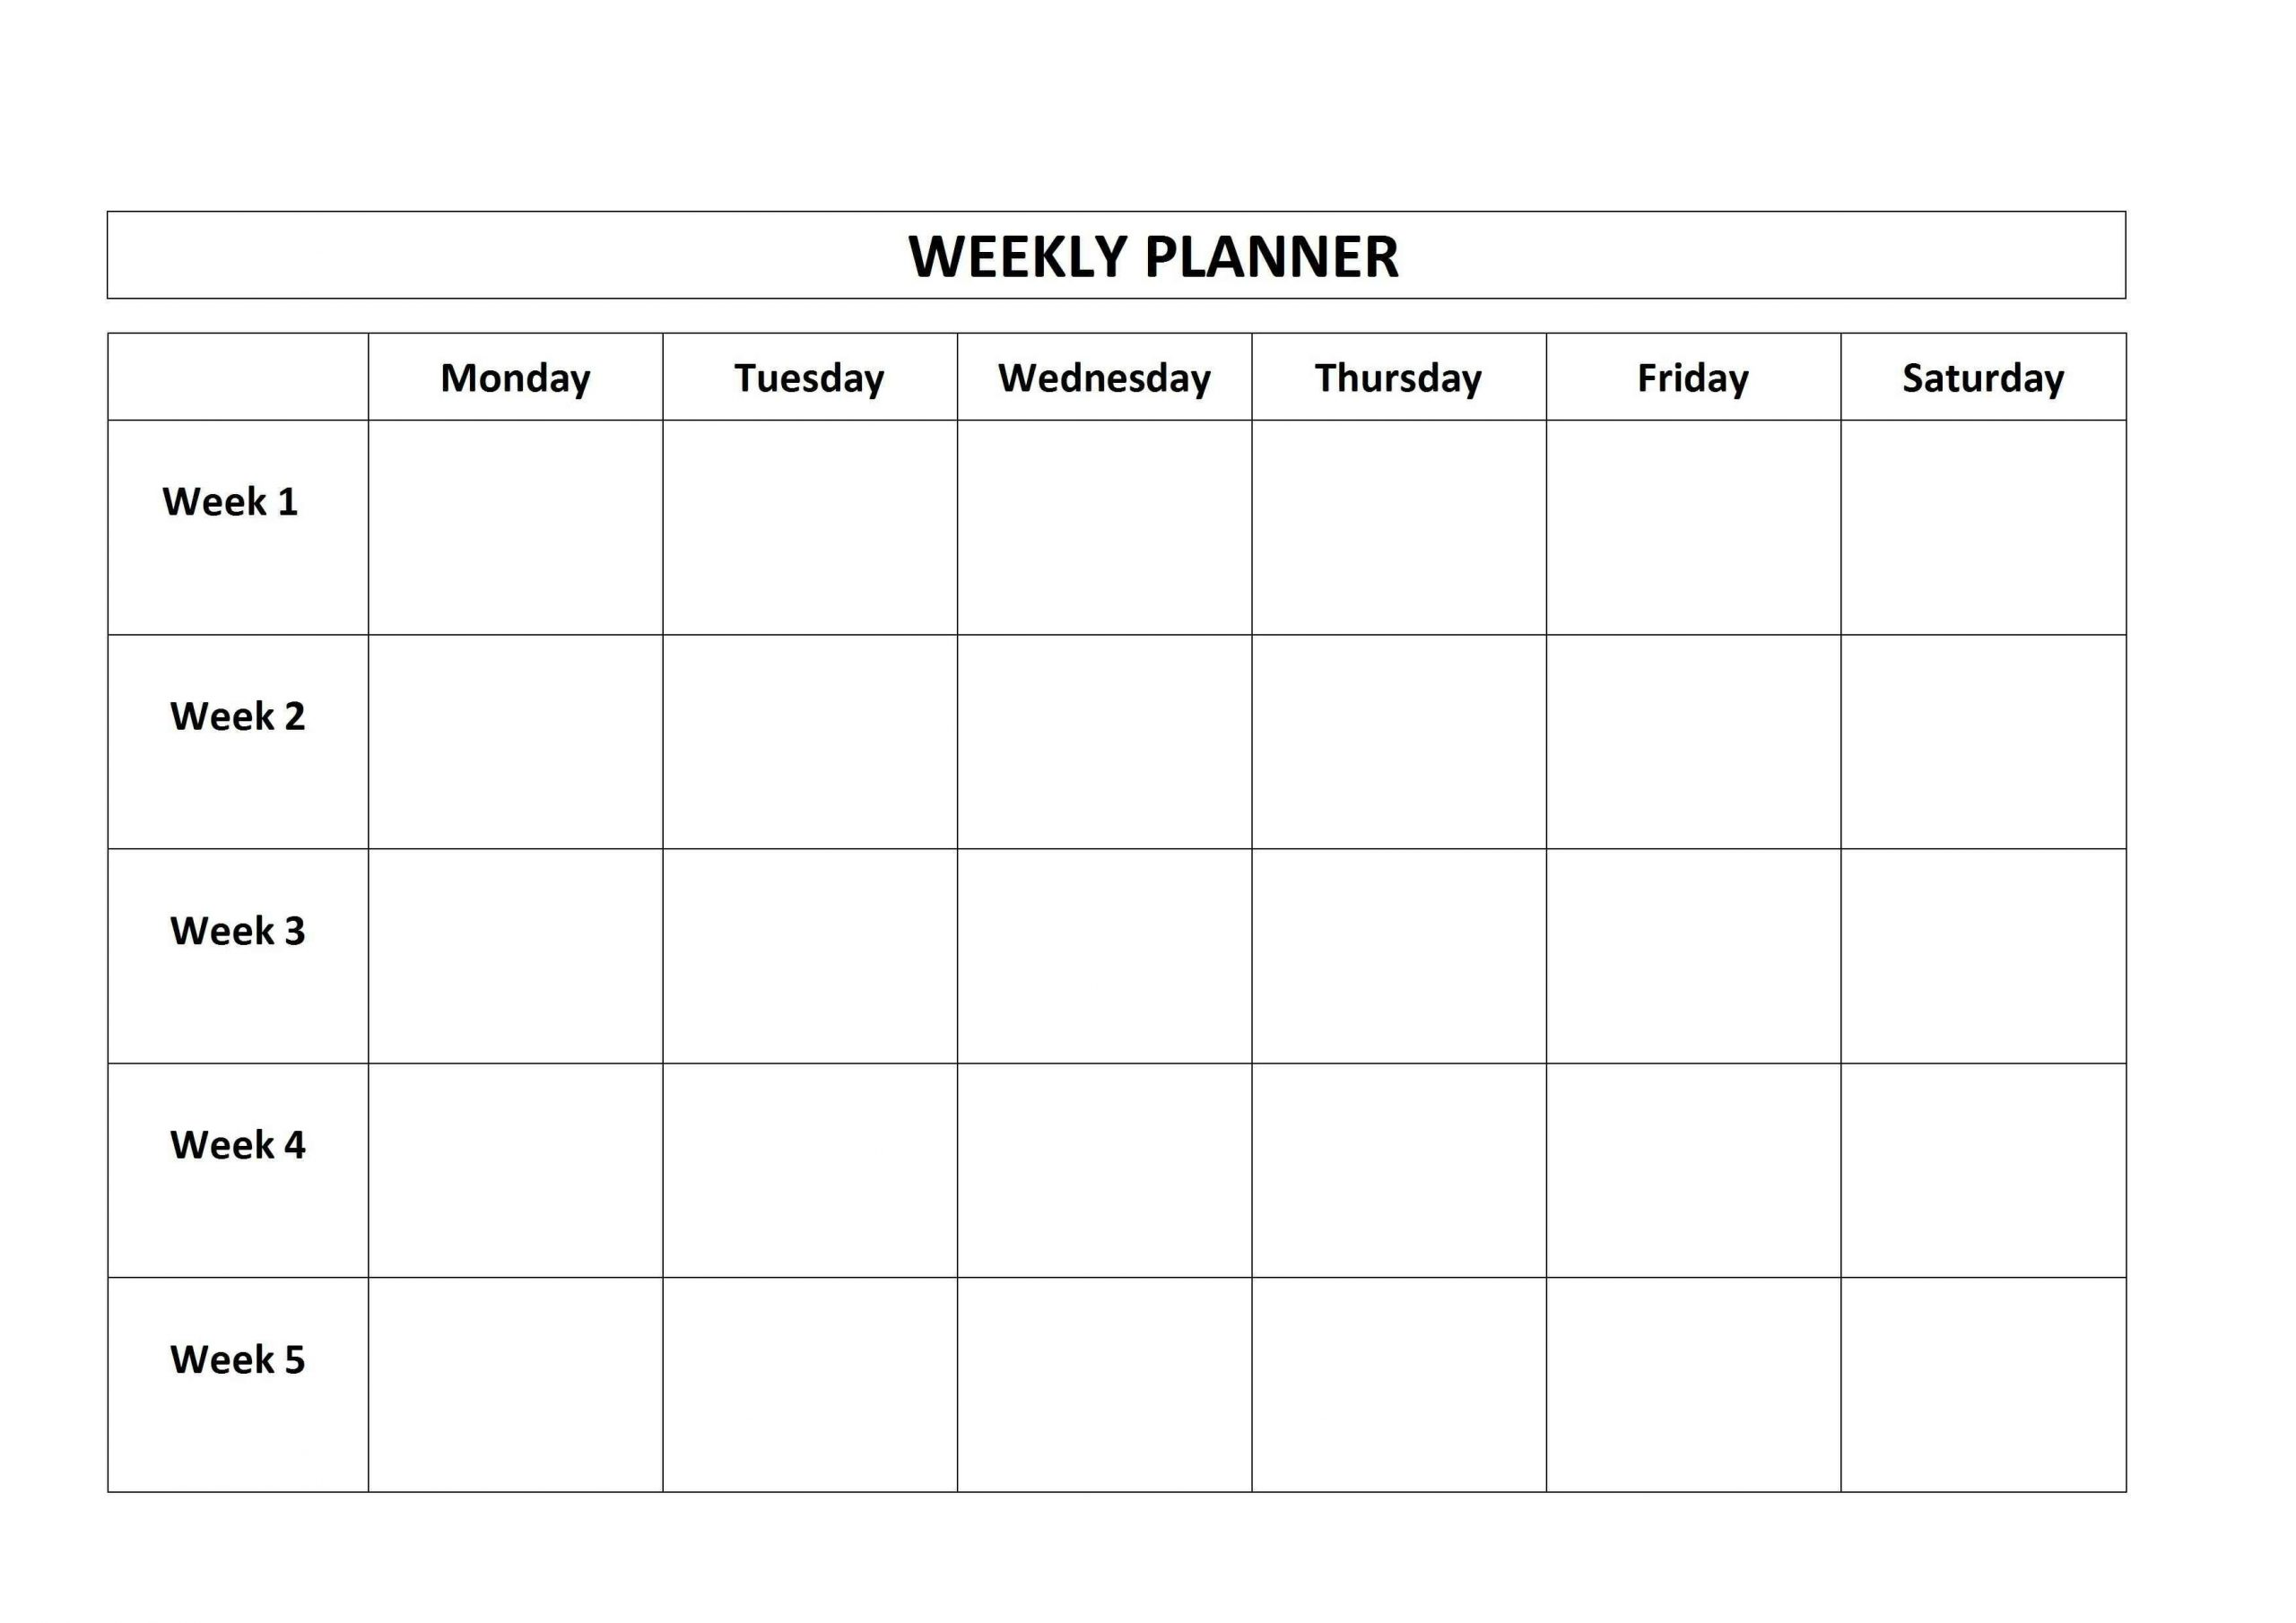 Monday To Friday Schedule Template | Example Calendar Monday To Friday Calender Template